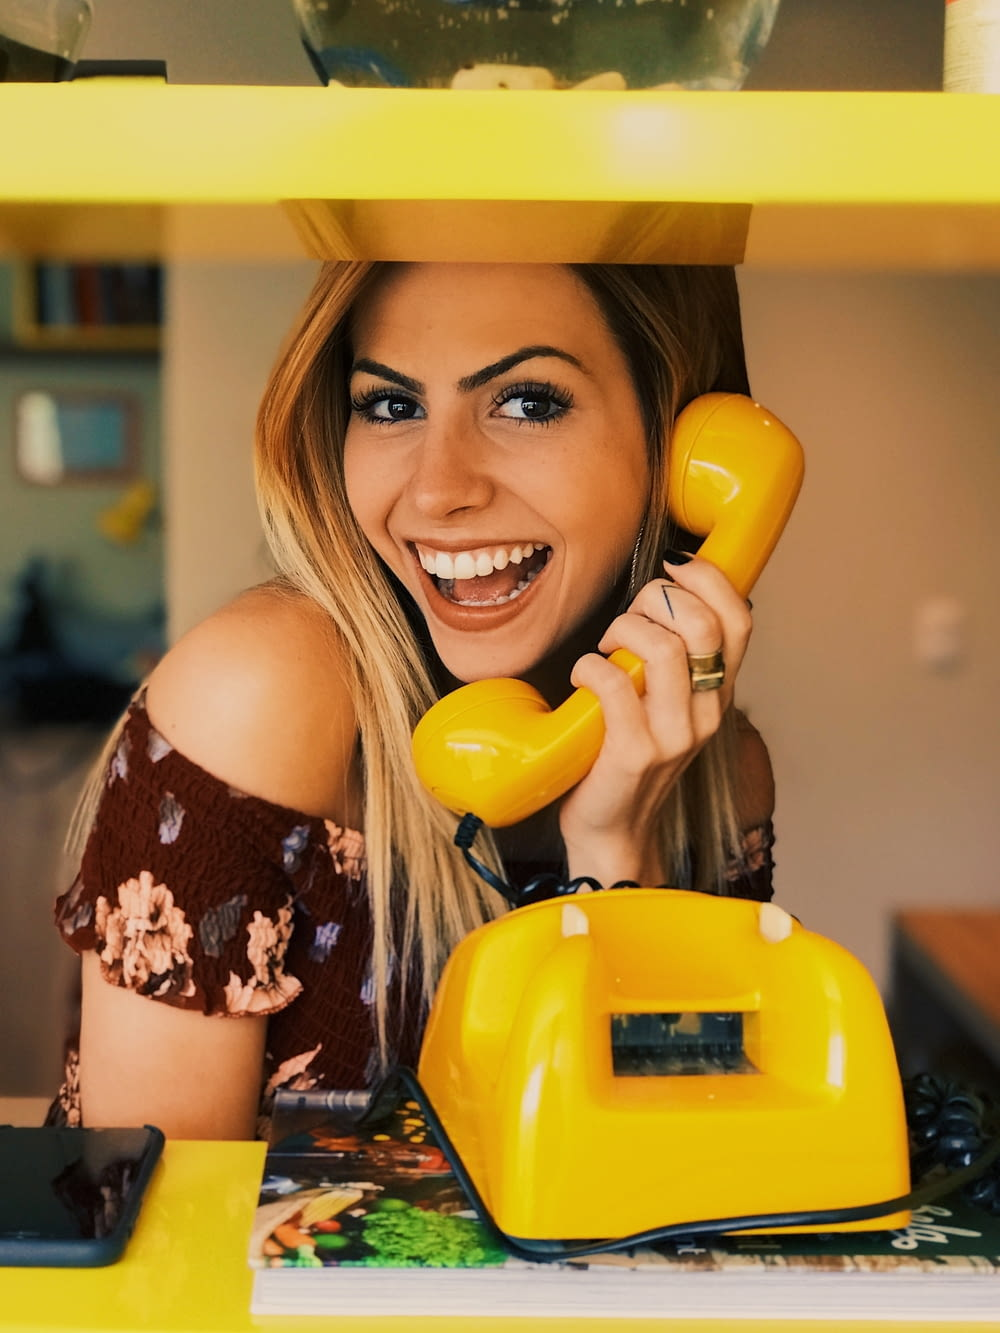 woman holding yellow rotary telephone